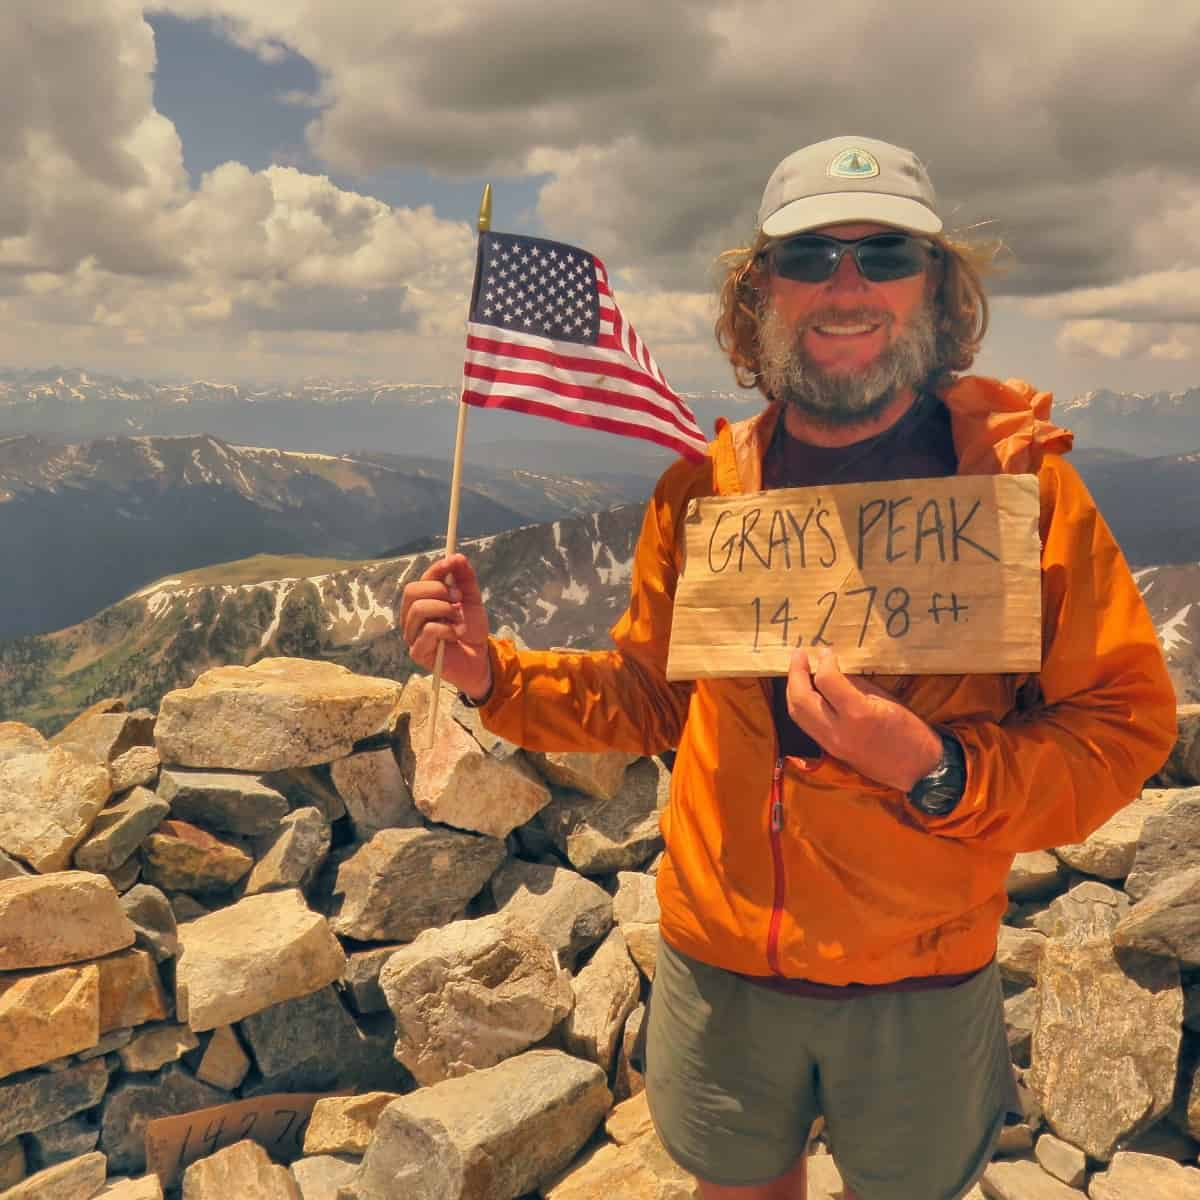 Summit of Grays Peak, Colorado. The highest point on the CDT